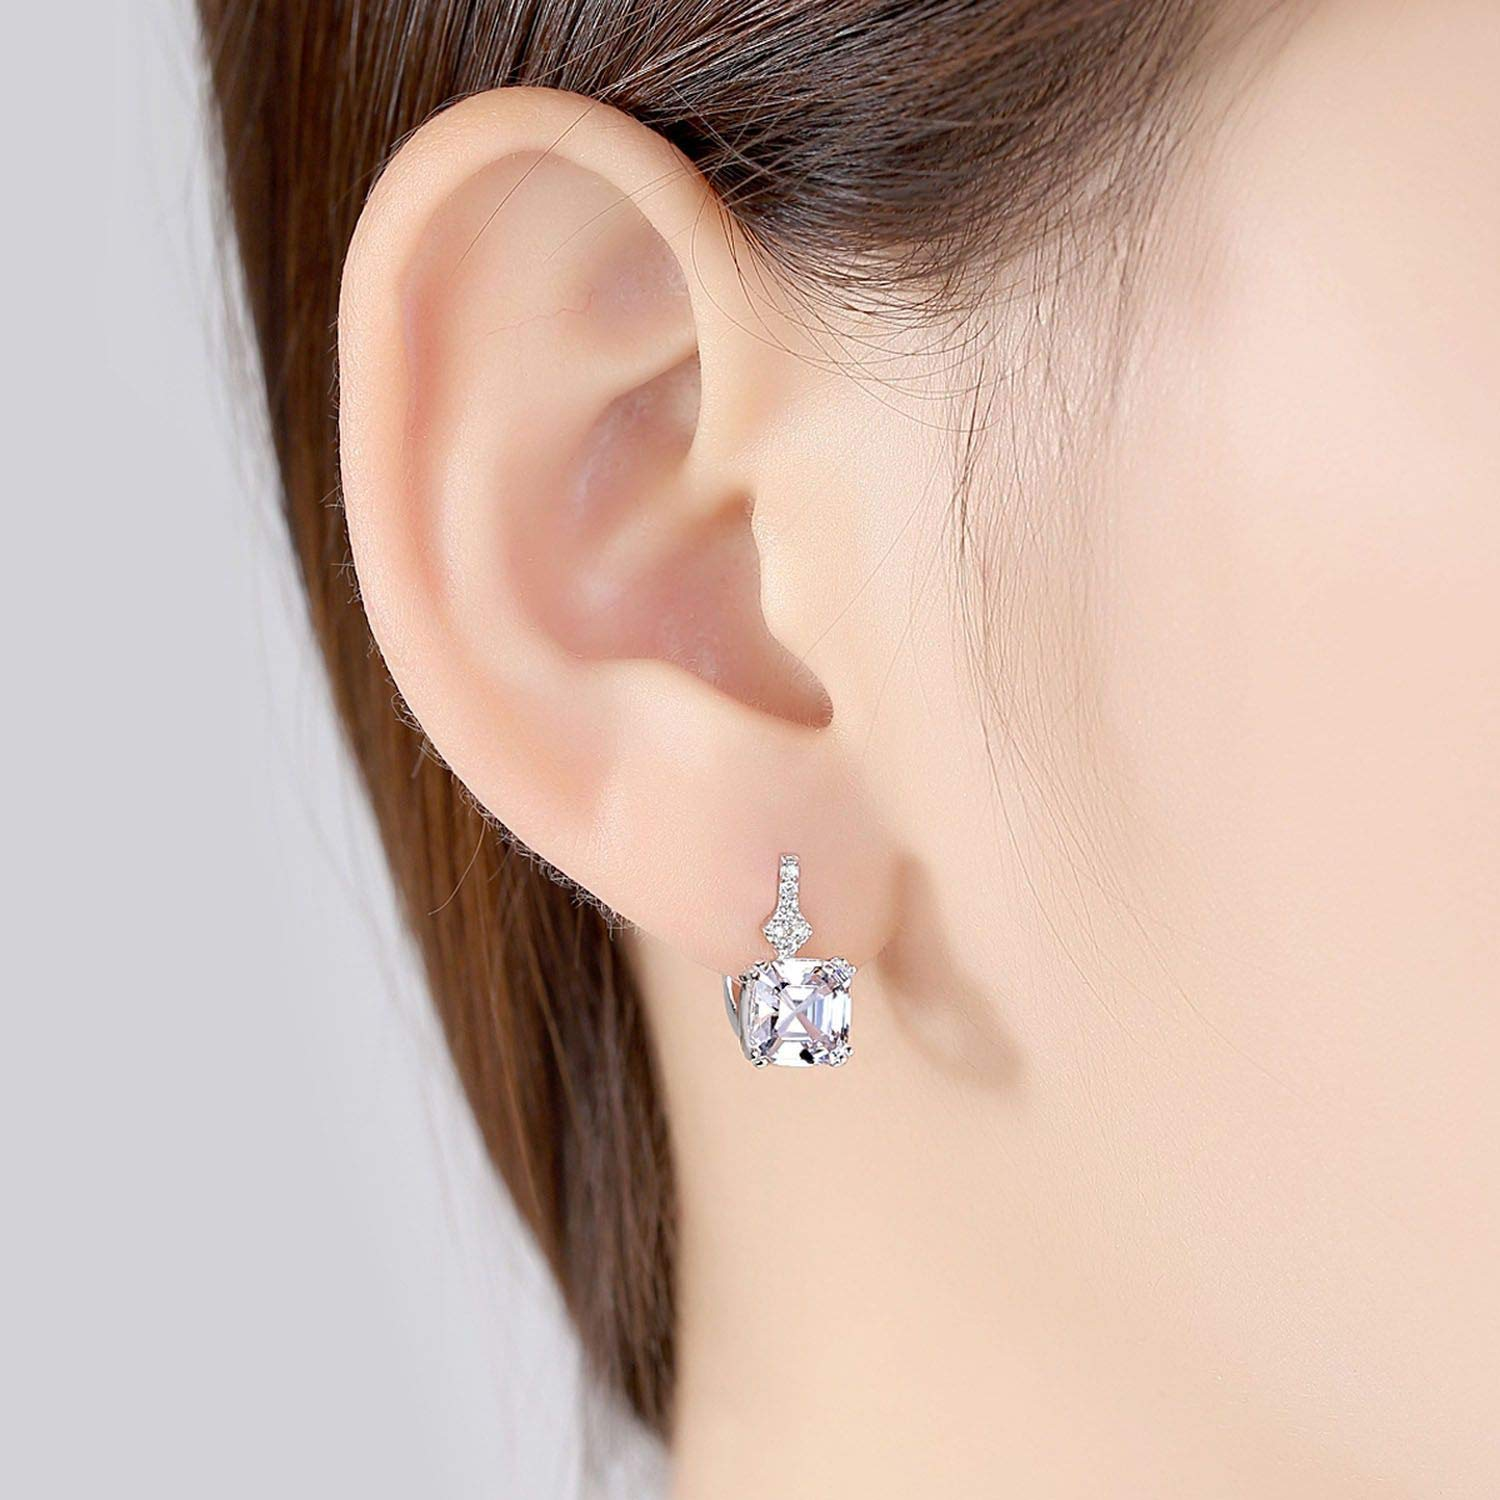 Silver Stud Earring Smoke Color Or White Silver Earring Jewelry For Women Daily